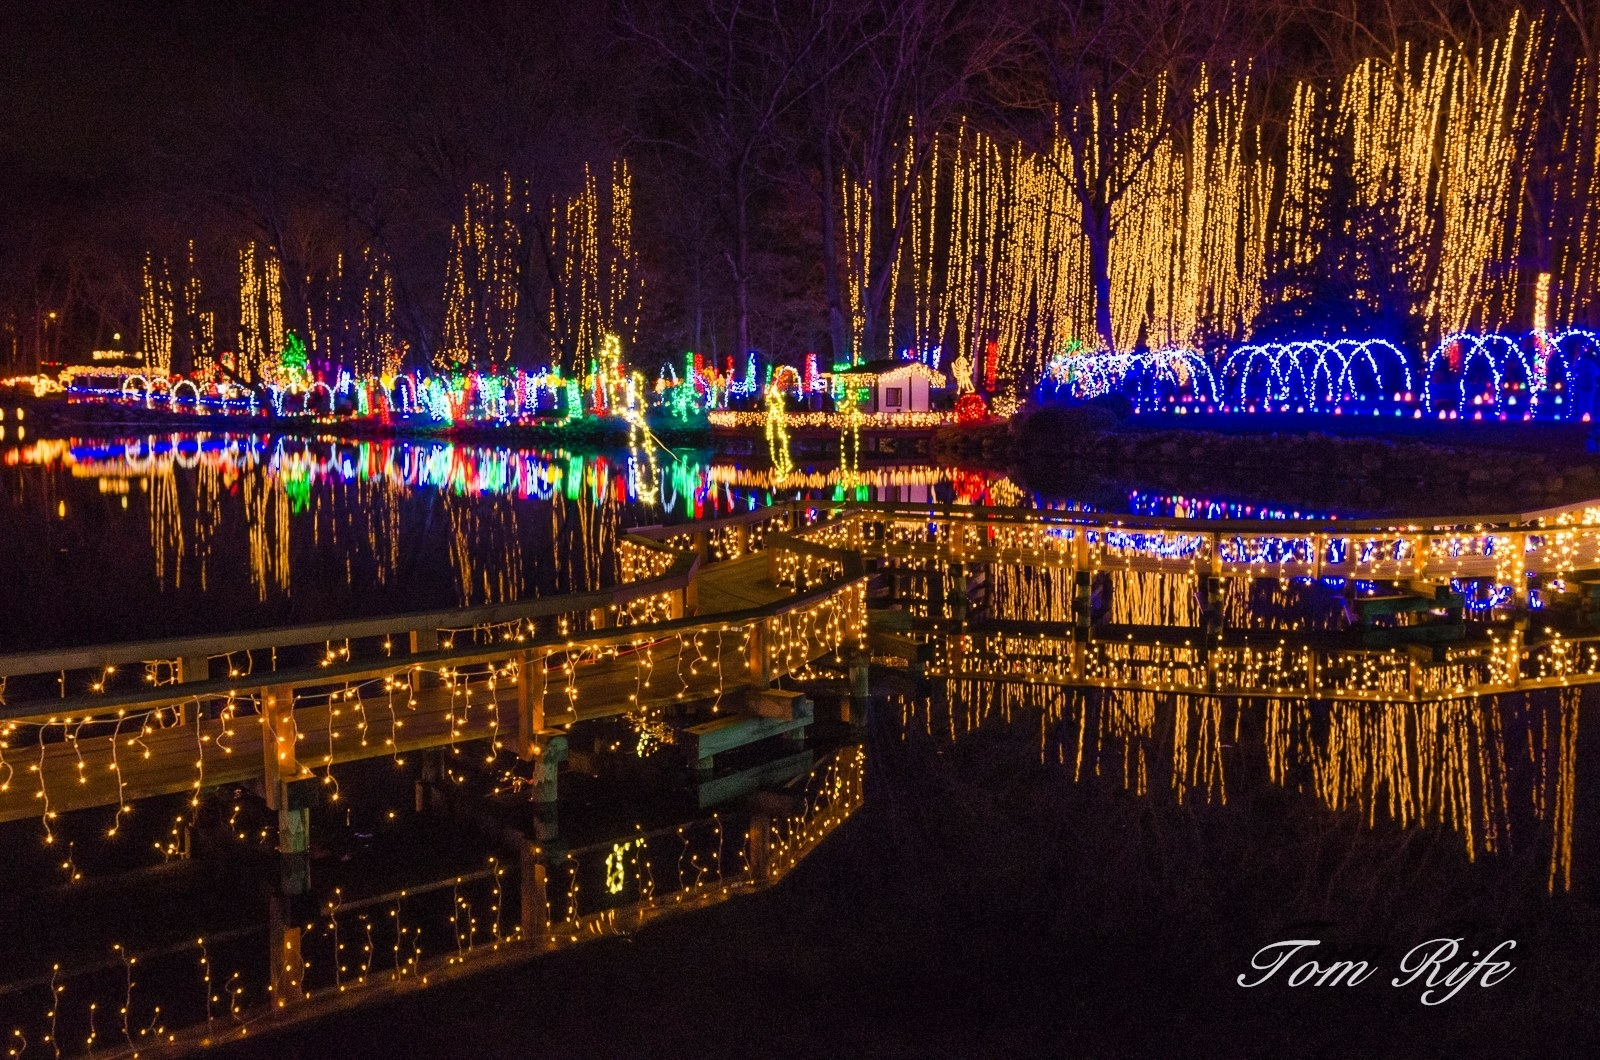 Holiday Light Show - Rotary Botanical Gardens with Rotary Garden Light Show Janesville Wi